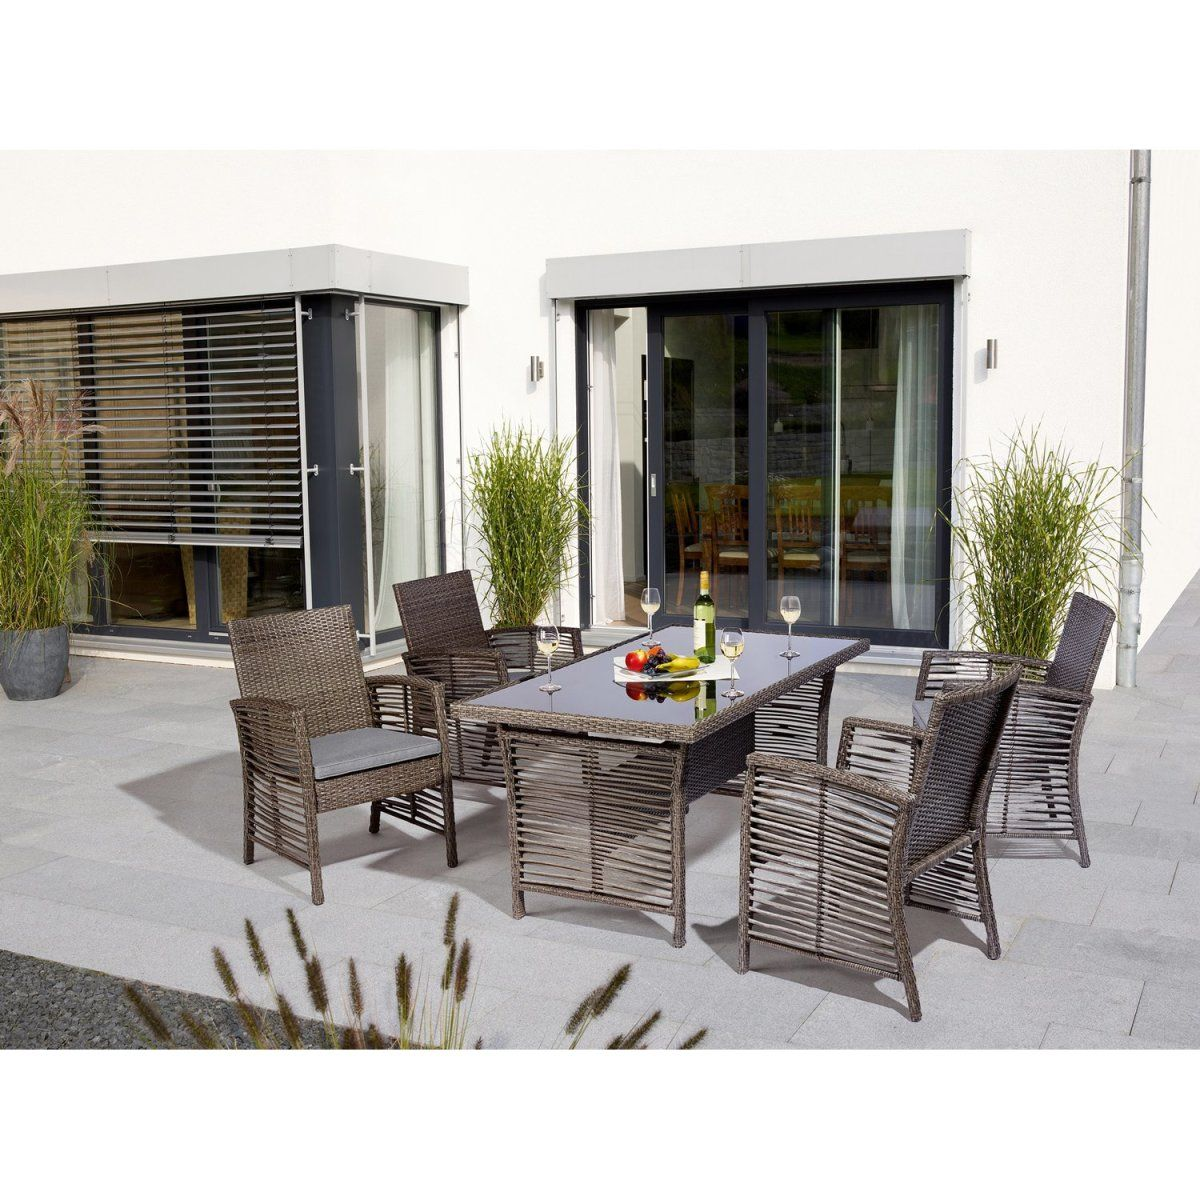 outdoor living gartenmobel obi, obi dining-gruppe fallston 5-tlg. jetzt bestellen unter: https, Design ideen